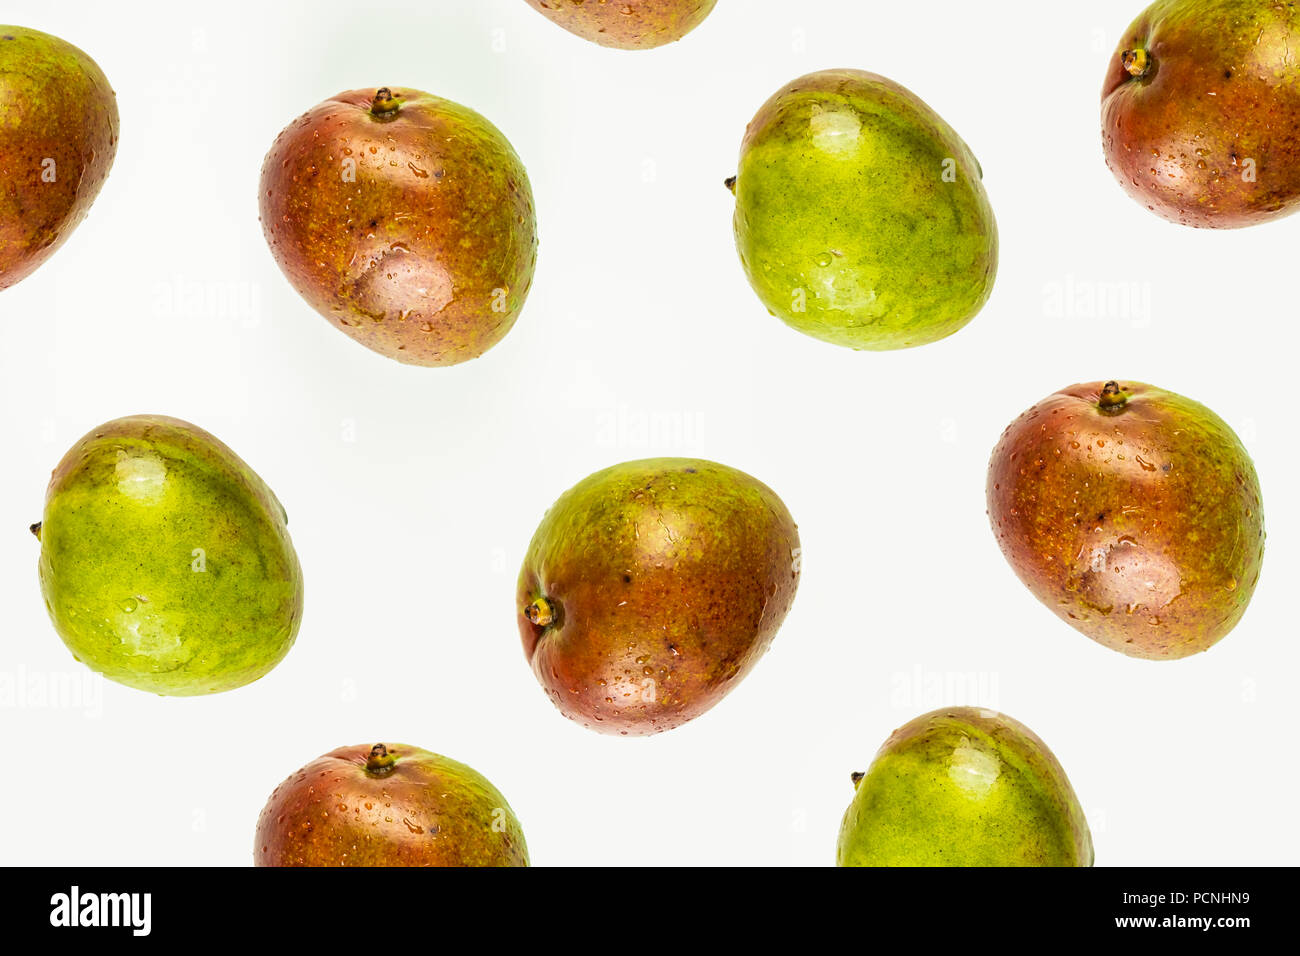 Isolated mango pattern or wallpaper on white background. Summer concept of fresh ripe whole mango fruits shot from above - Stock Image